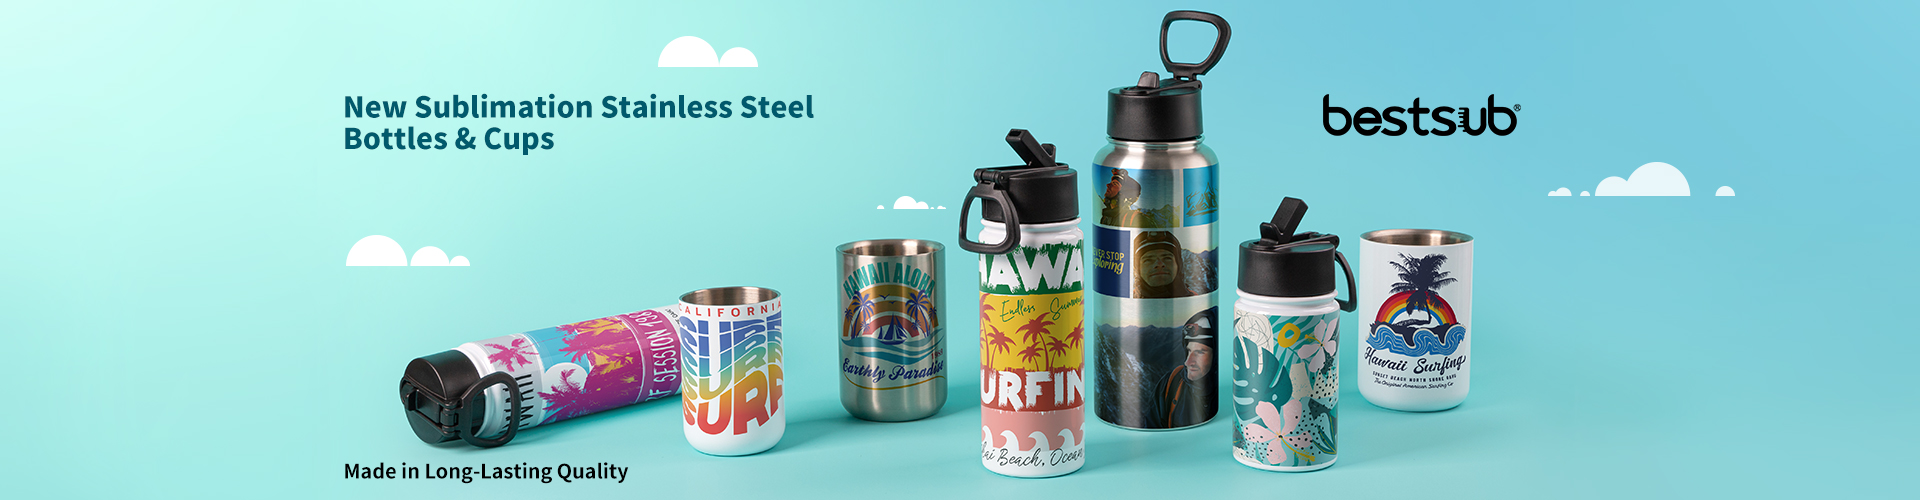 2021-05-18_New_Sublimation_Stainless_Steel_Bottles_Cups_new_web